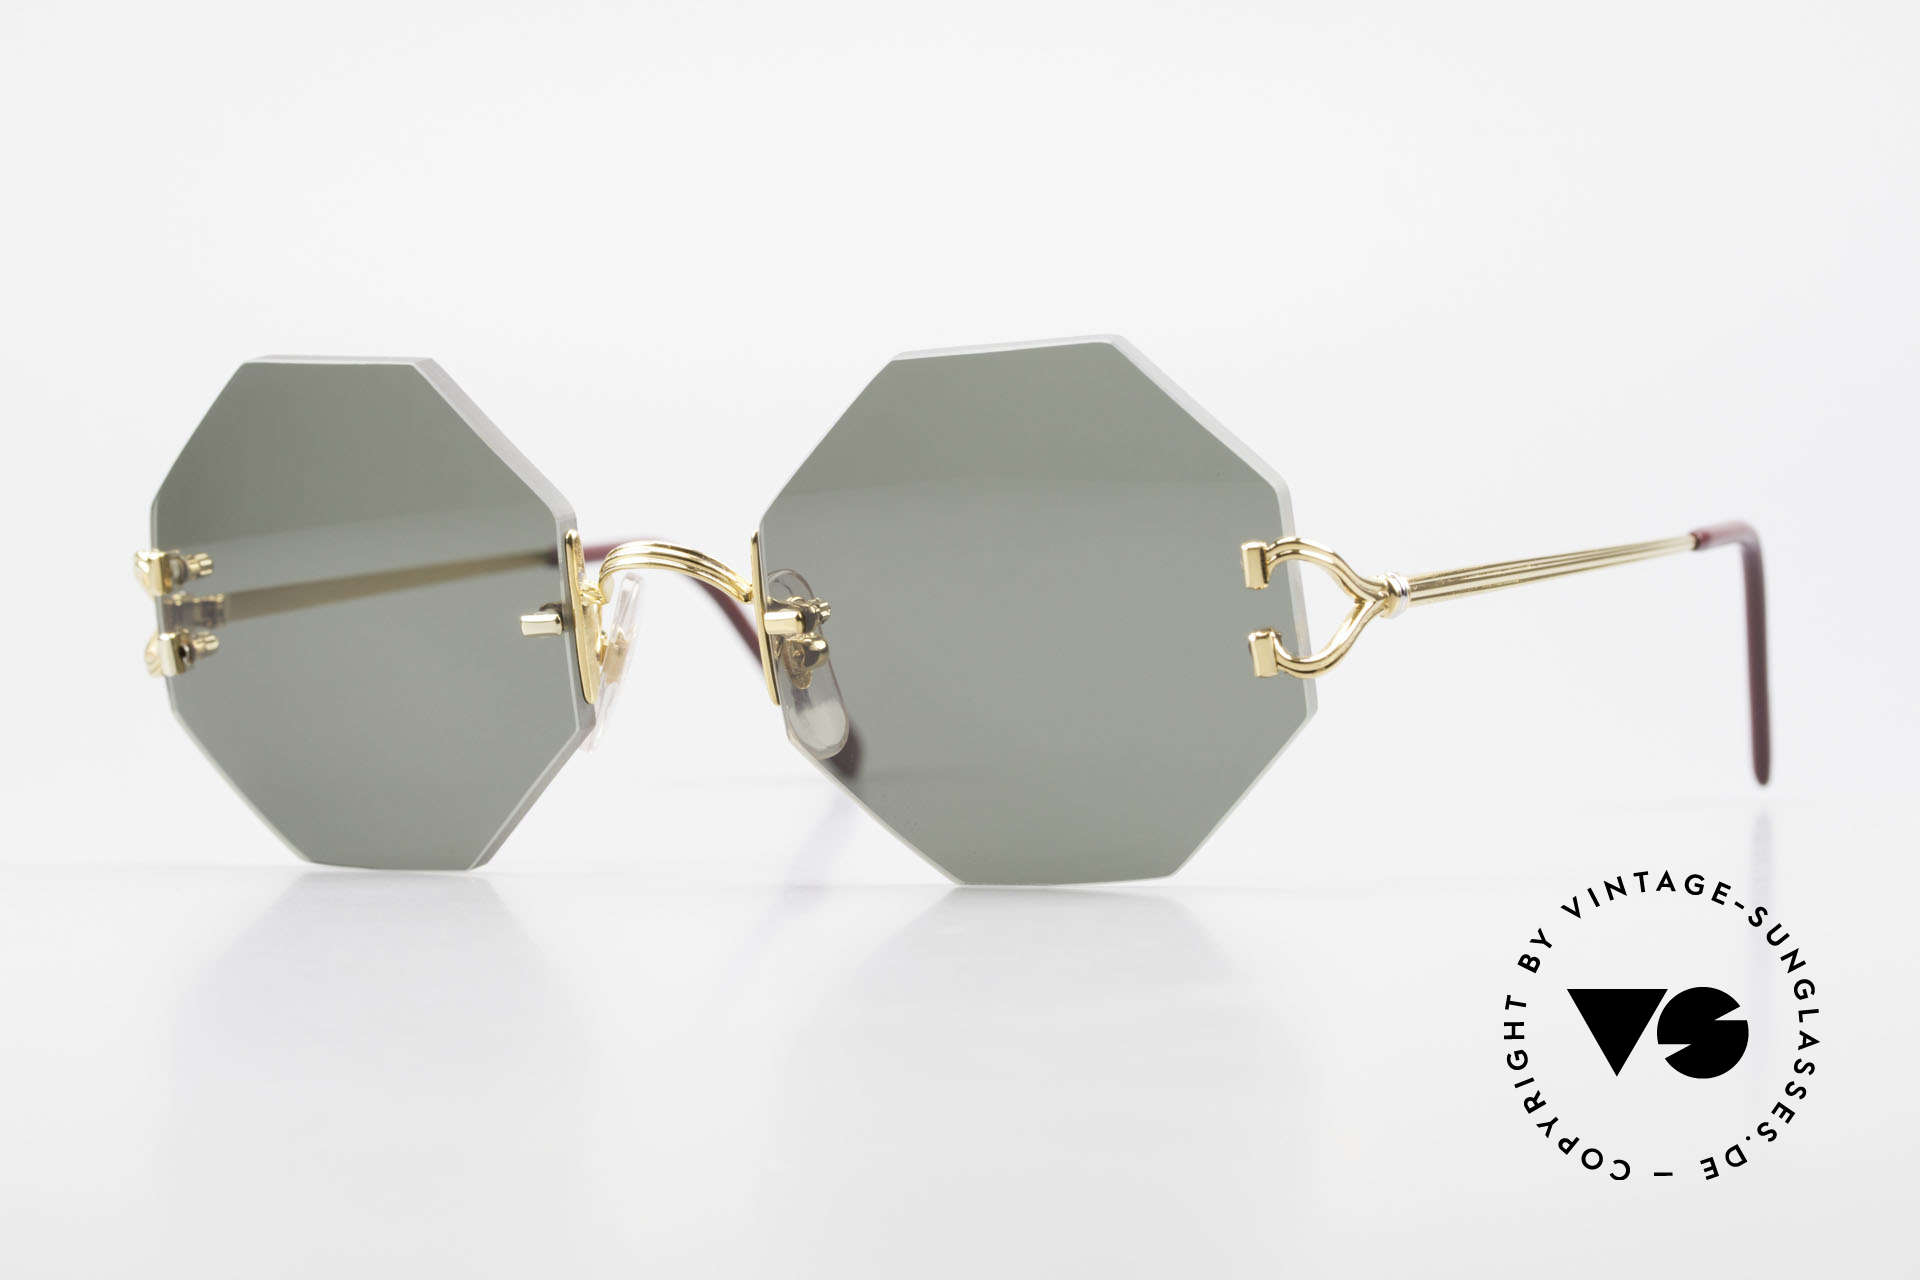 Cartier Rimless Octag Rimless Octagonal Sunglasses, octagonal rimless CARTIER luxury shades from '99, Made for Men and Women